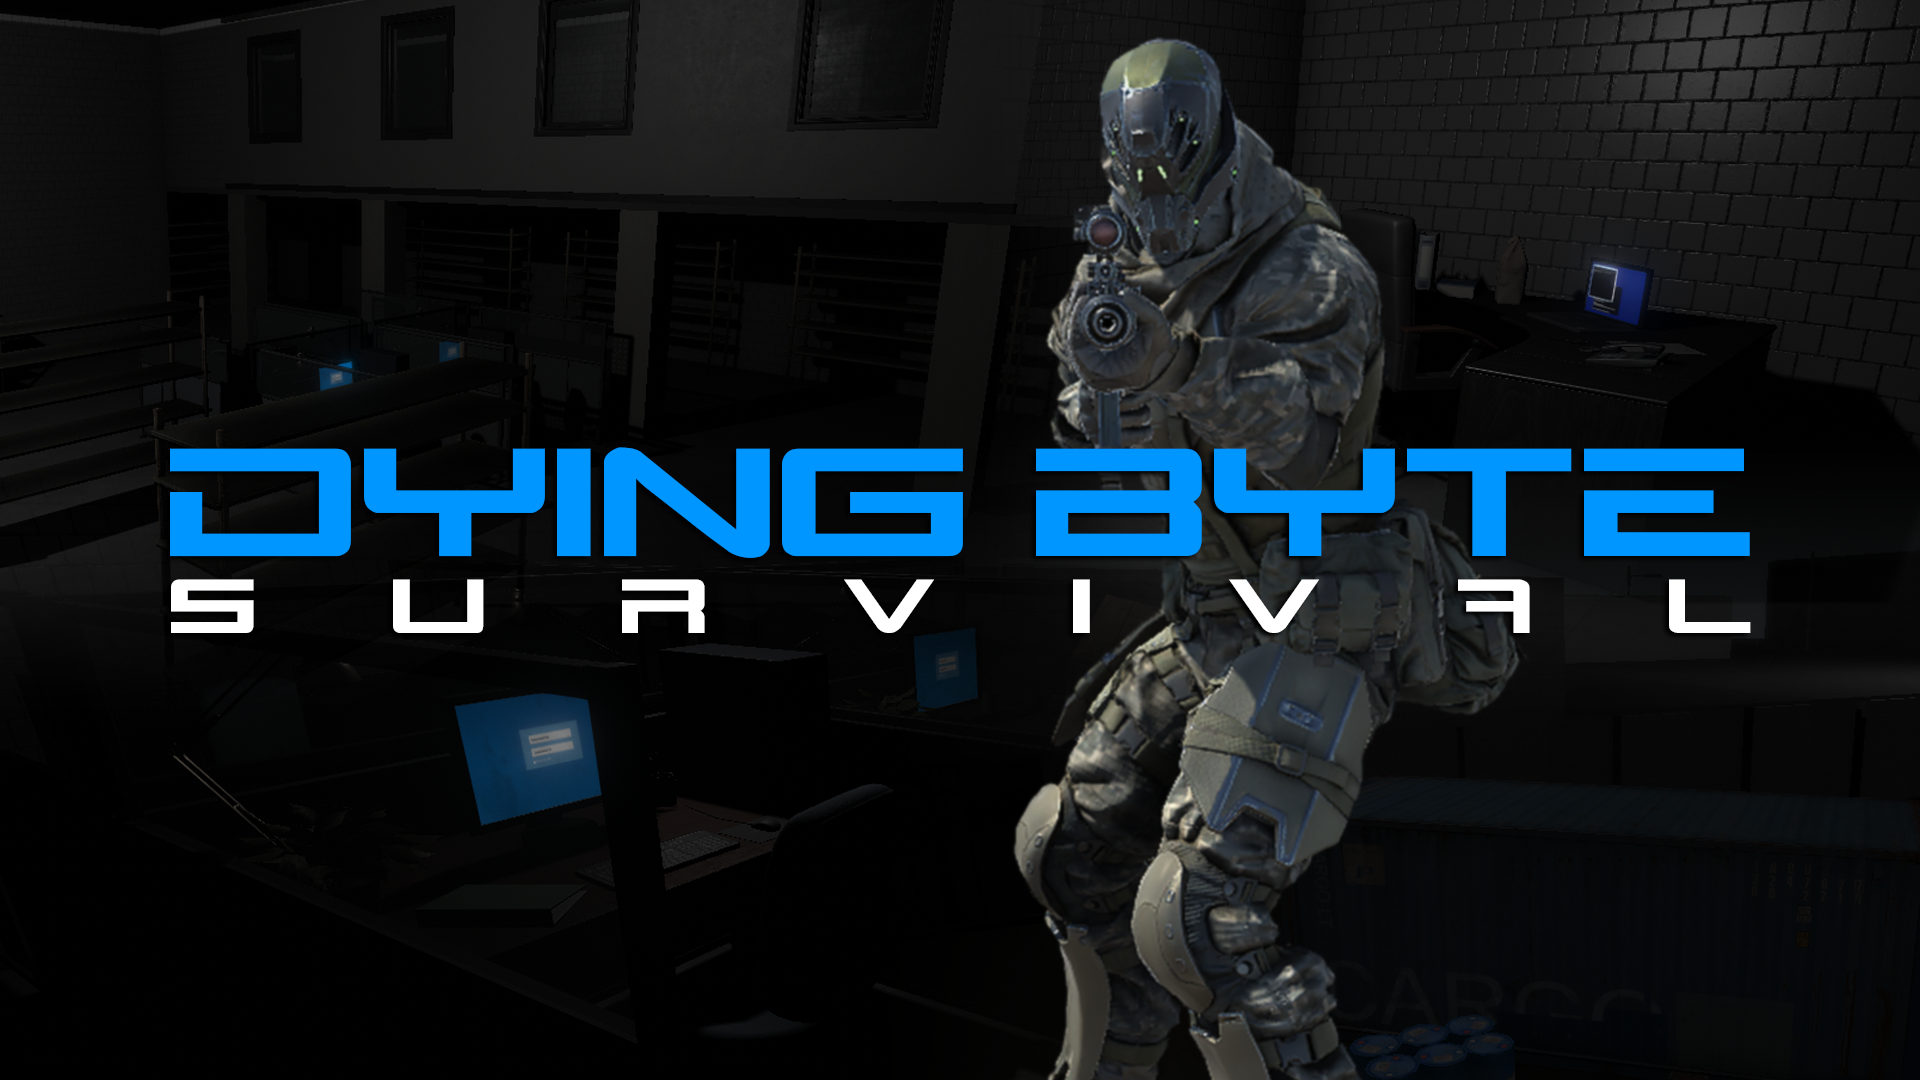 Dying Byte Survival Wallpaper 11